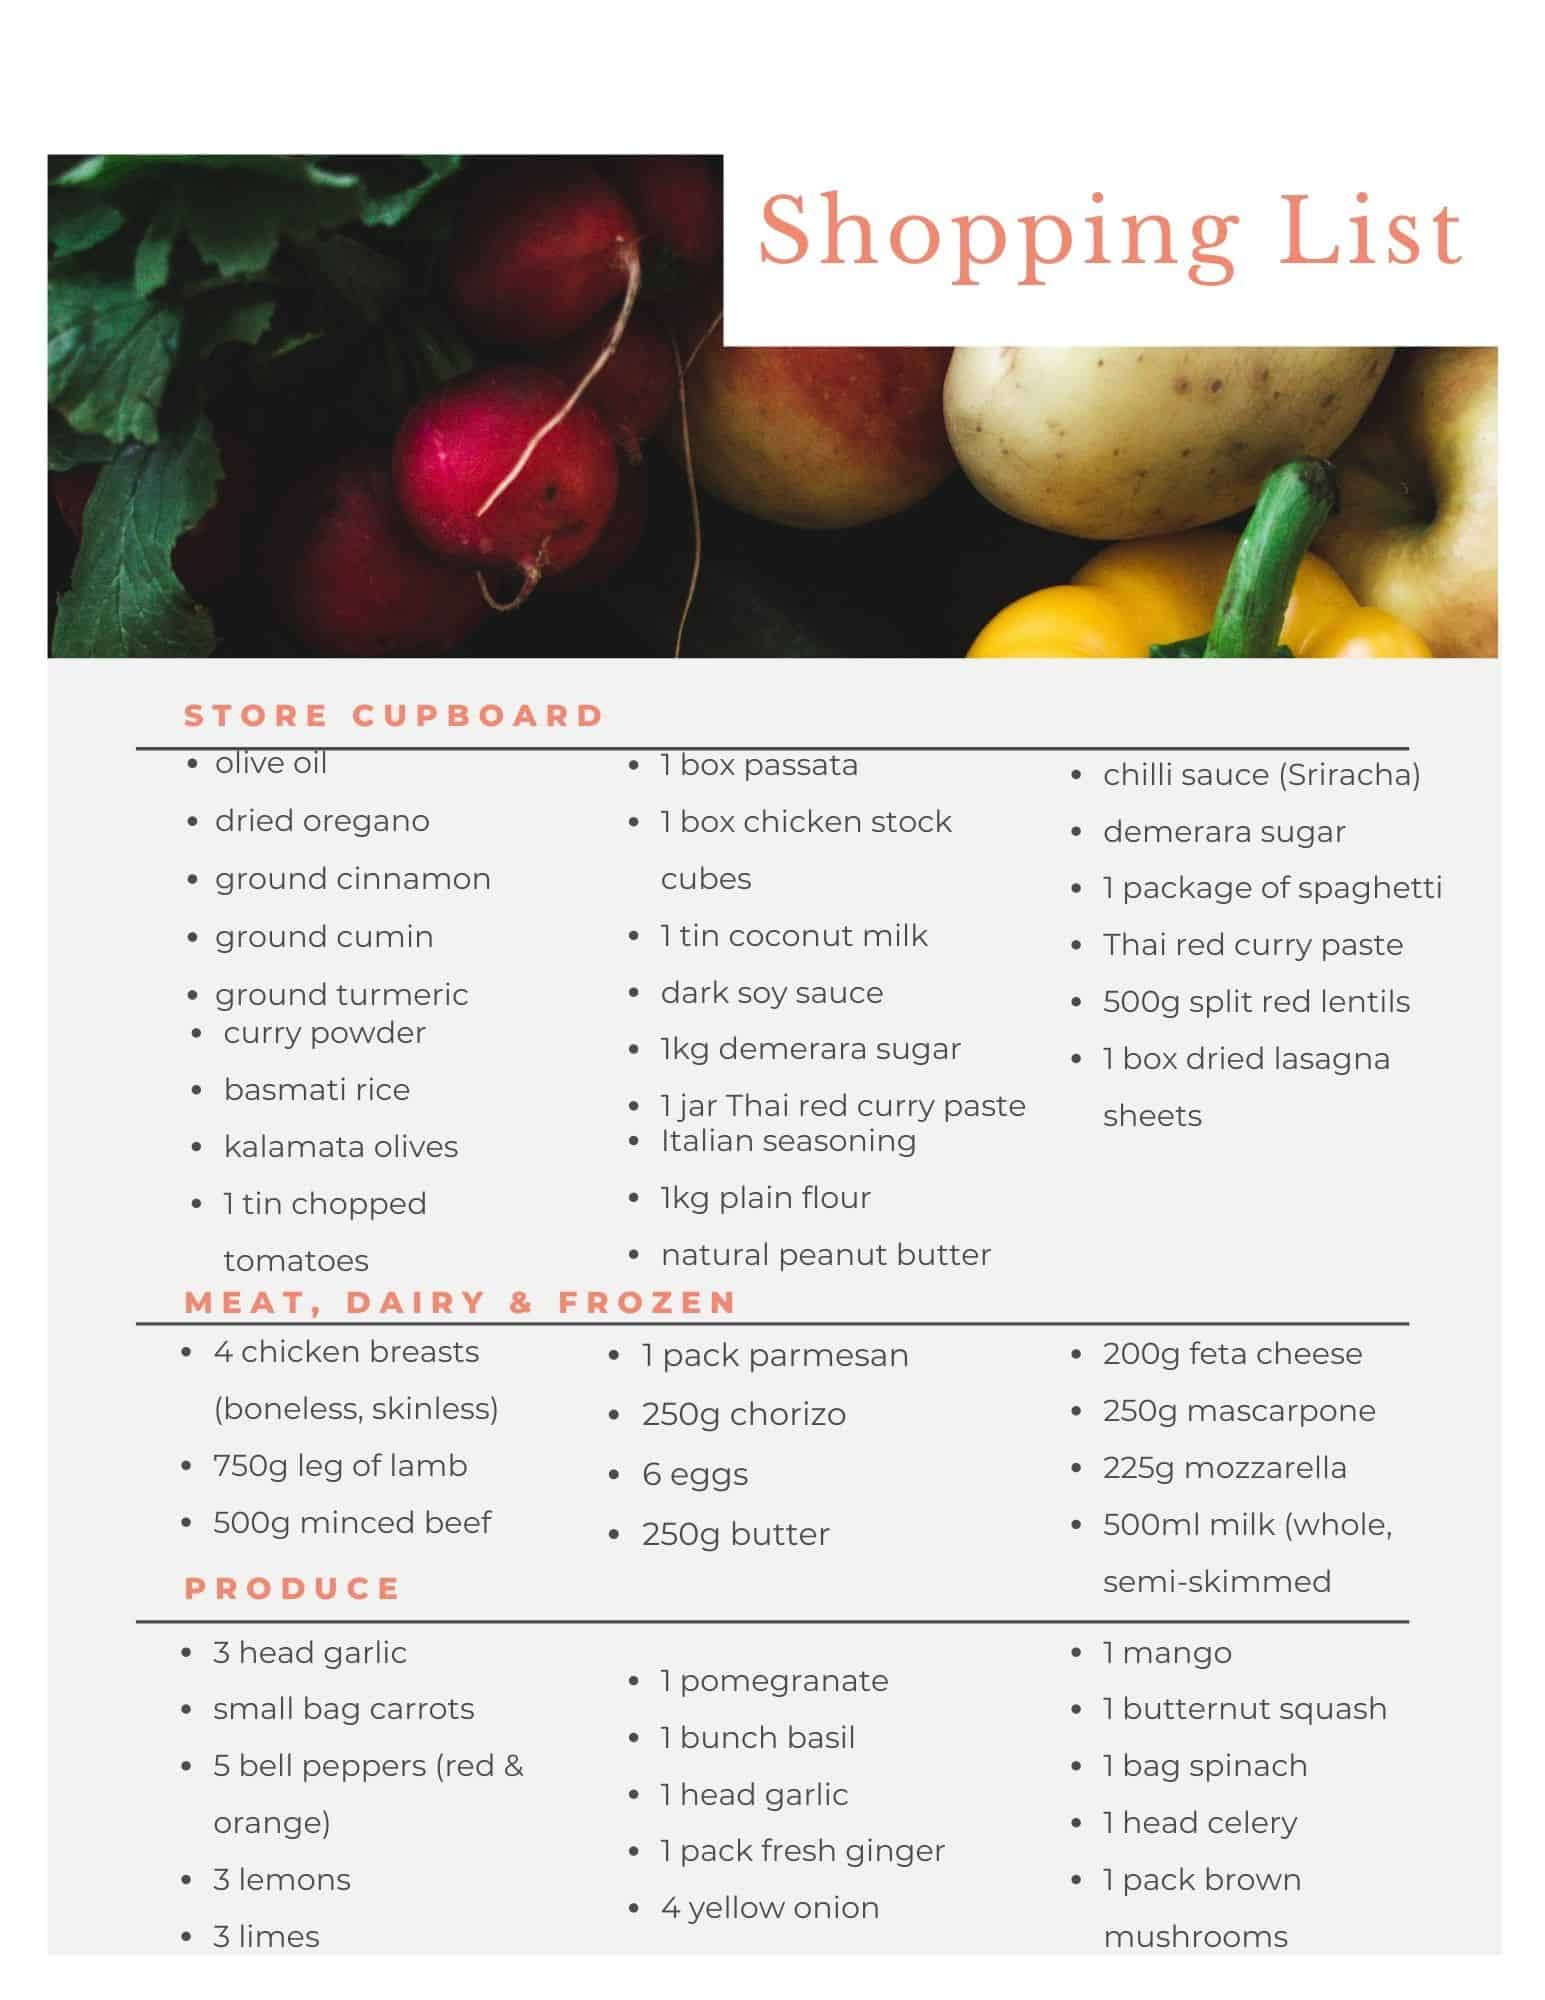 Shopping list for Aldi meal plan.